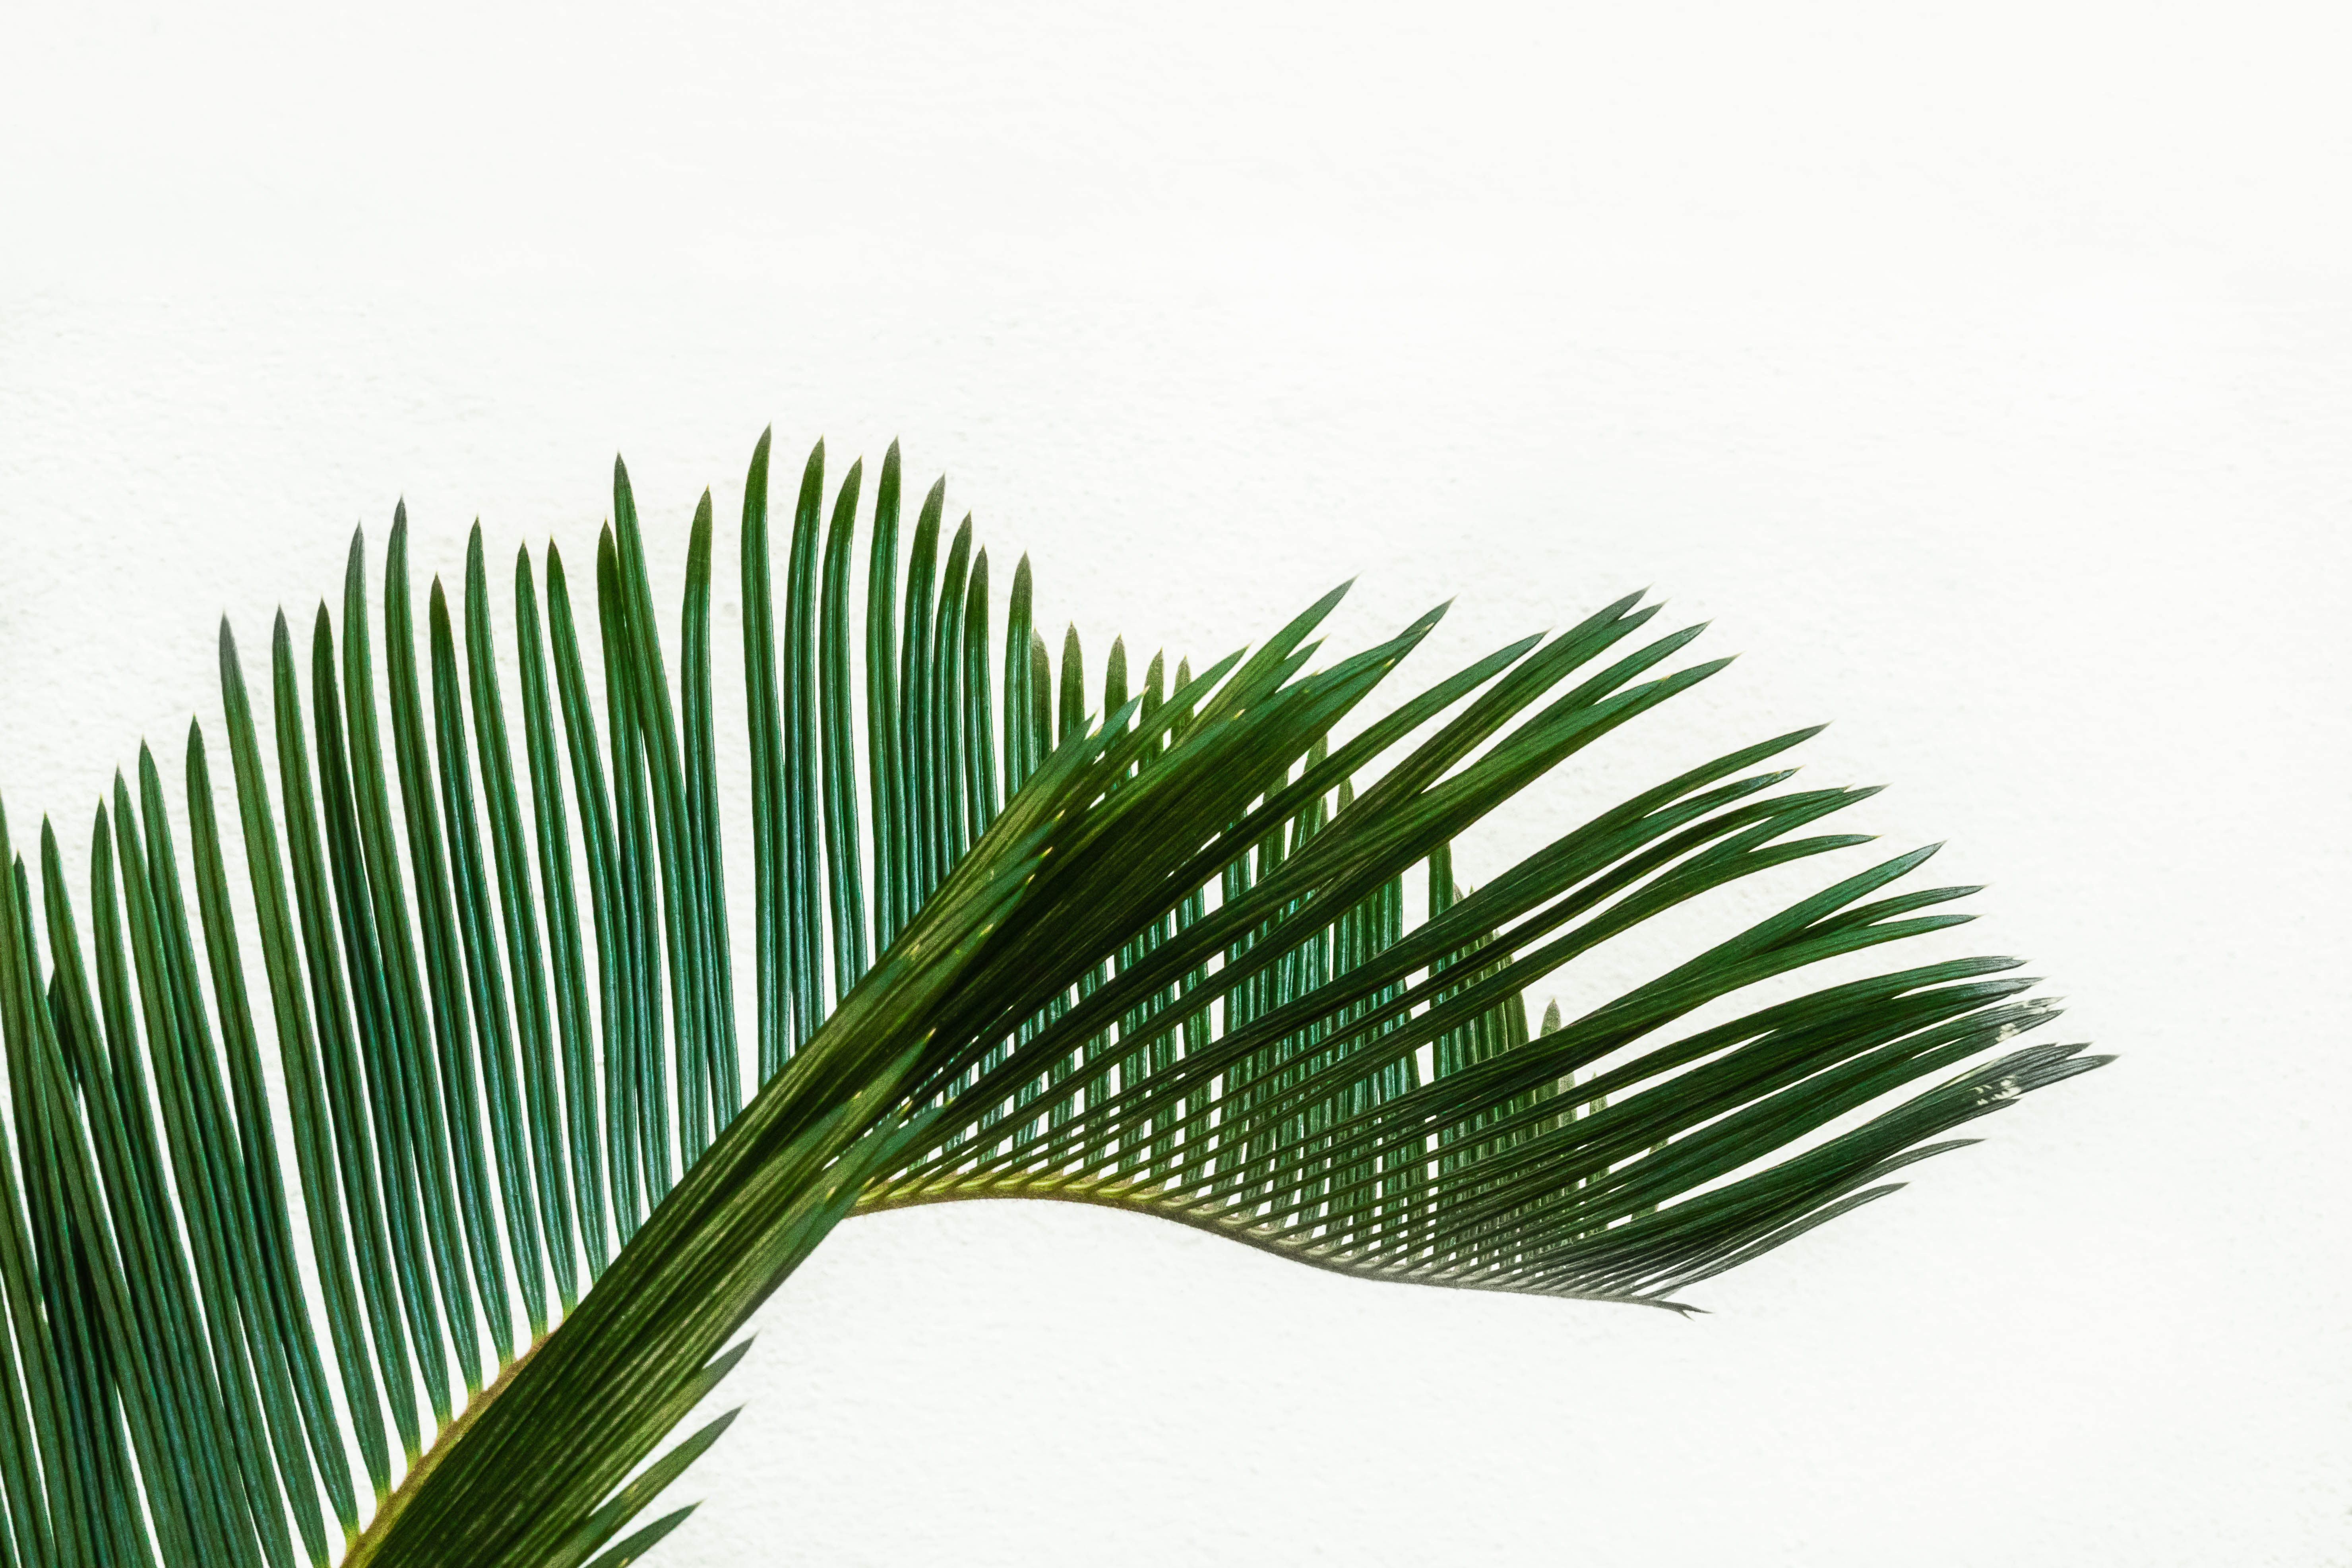 green coconut tree leaf at daytime